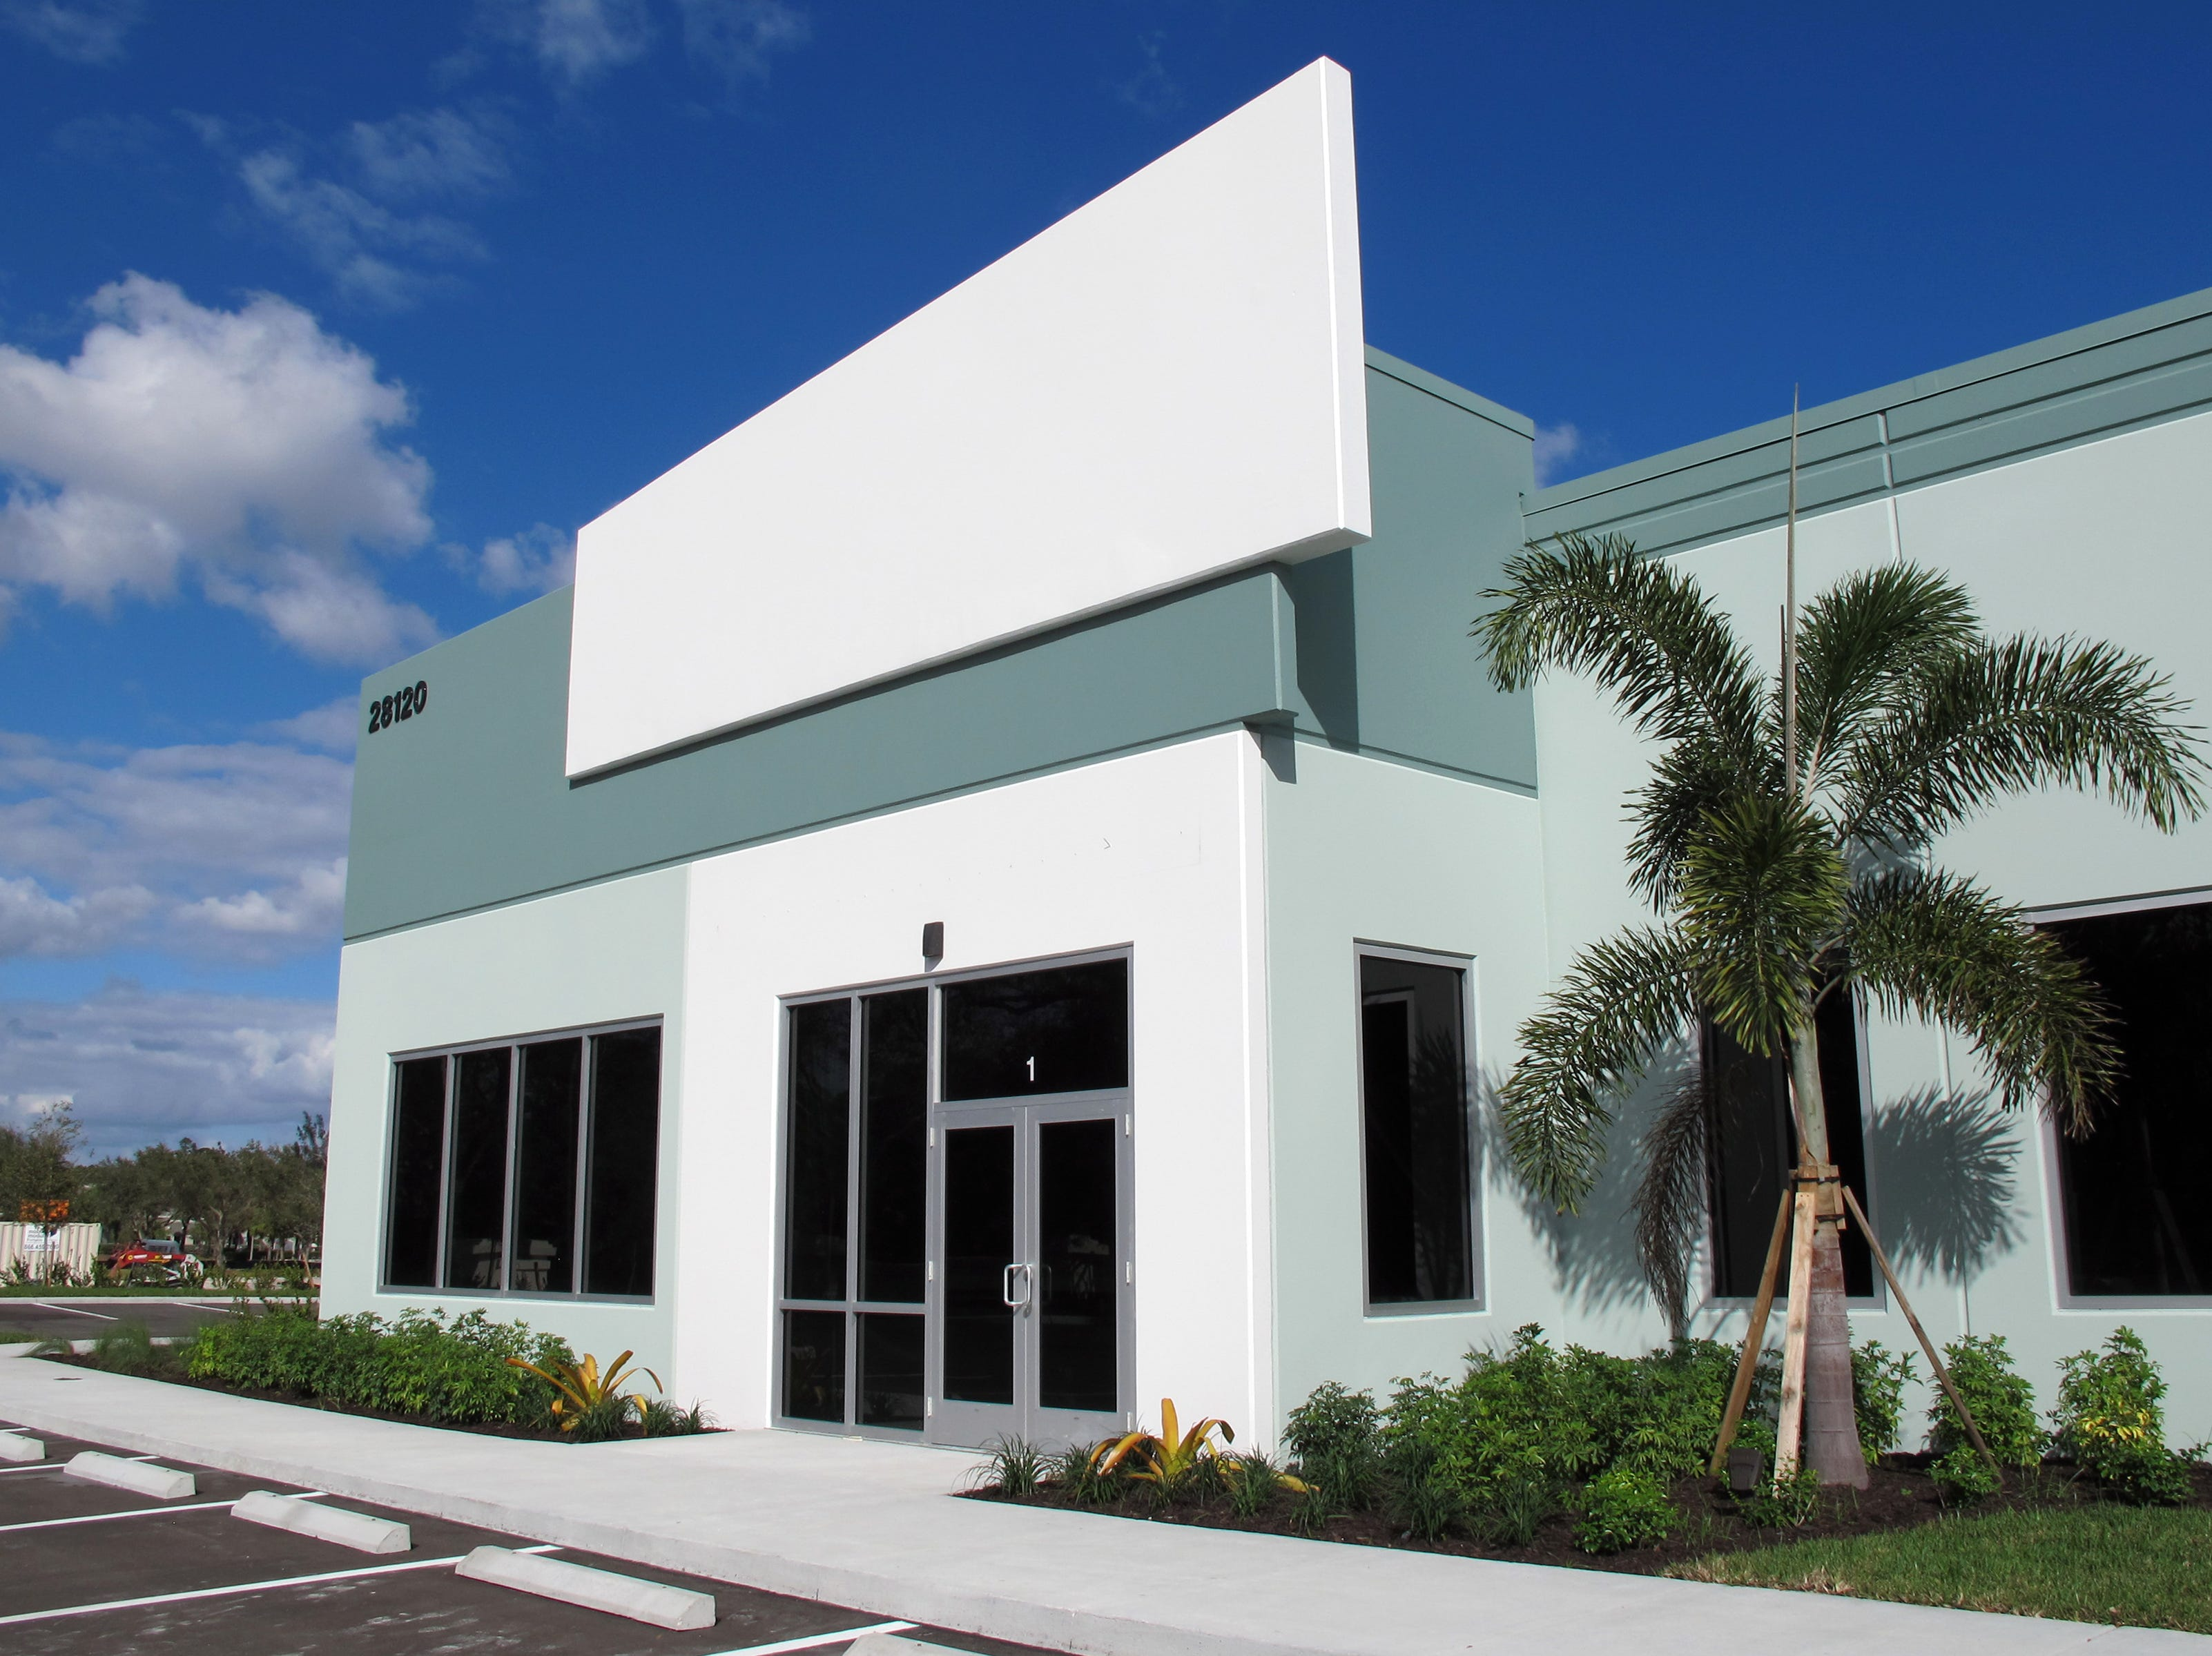 Momentum Brewhouse is staying in Bonita Springs but moving this spring from 9786 Bonita Beach Road to this location at 28120 Hunters Ridge Blvd., Units 1-3.